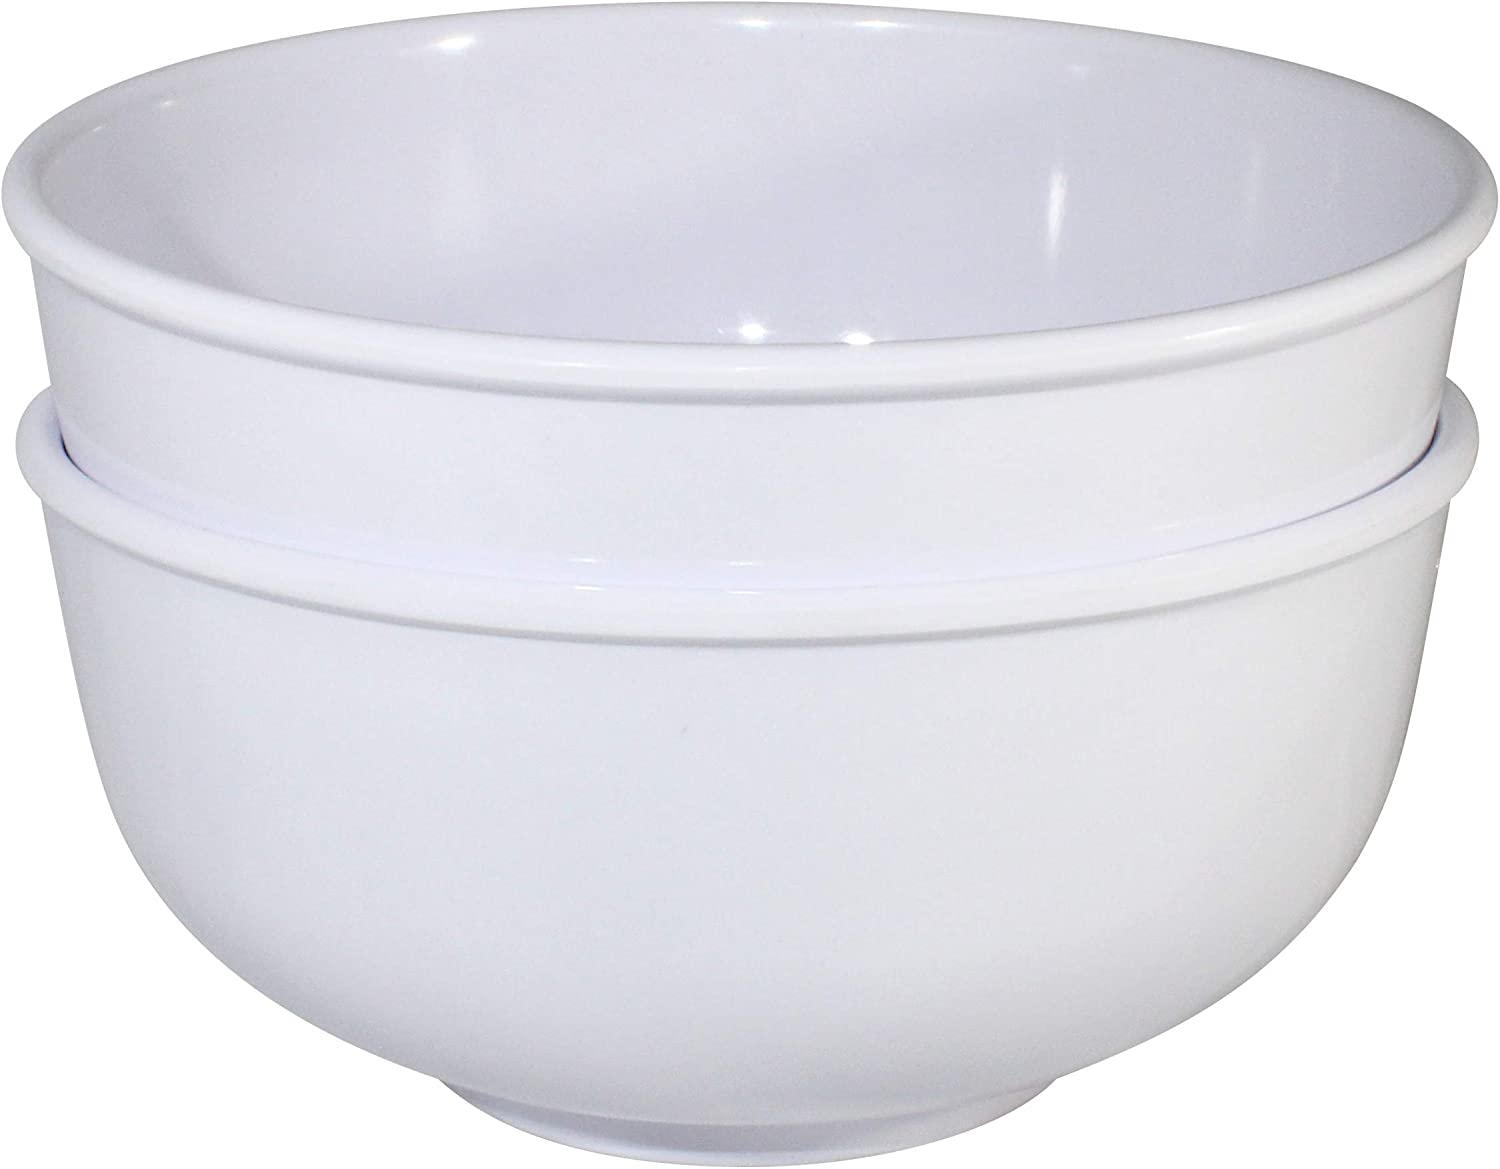 Chef Miso Set of 2 Extra Large Melamine Soup Bowls Red and Black Pho and Ramen Bowls 60 Ounces